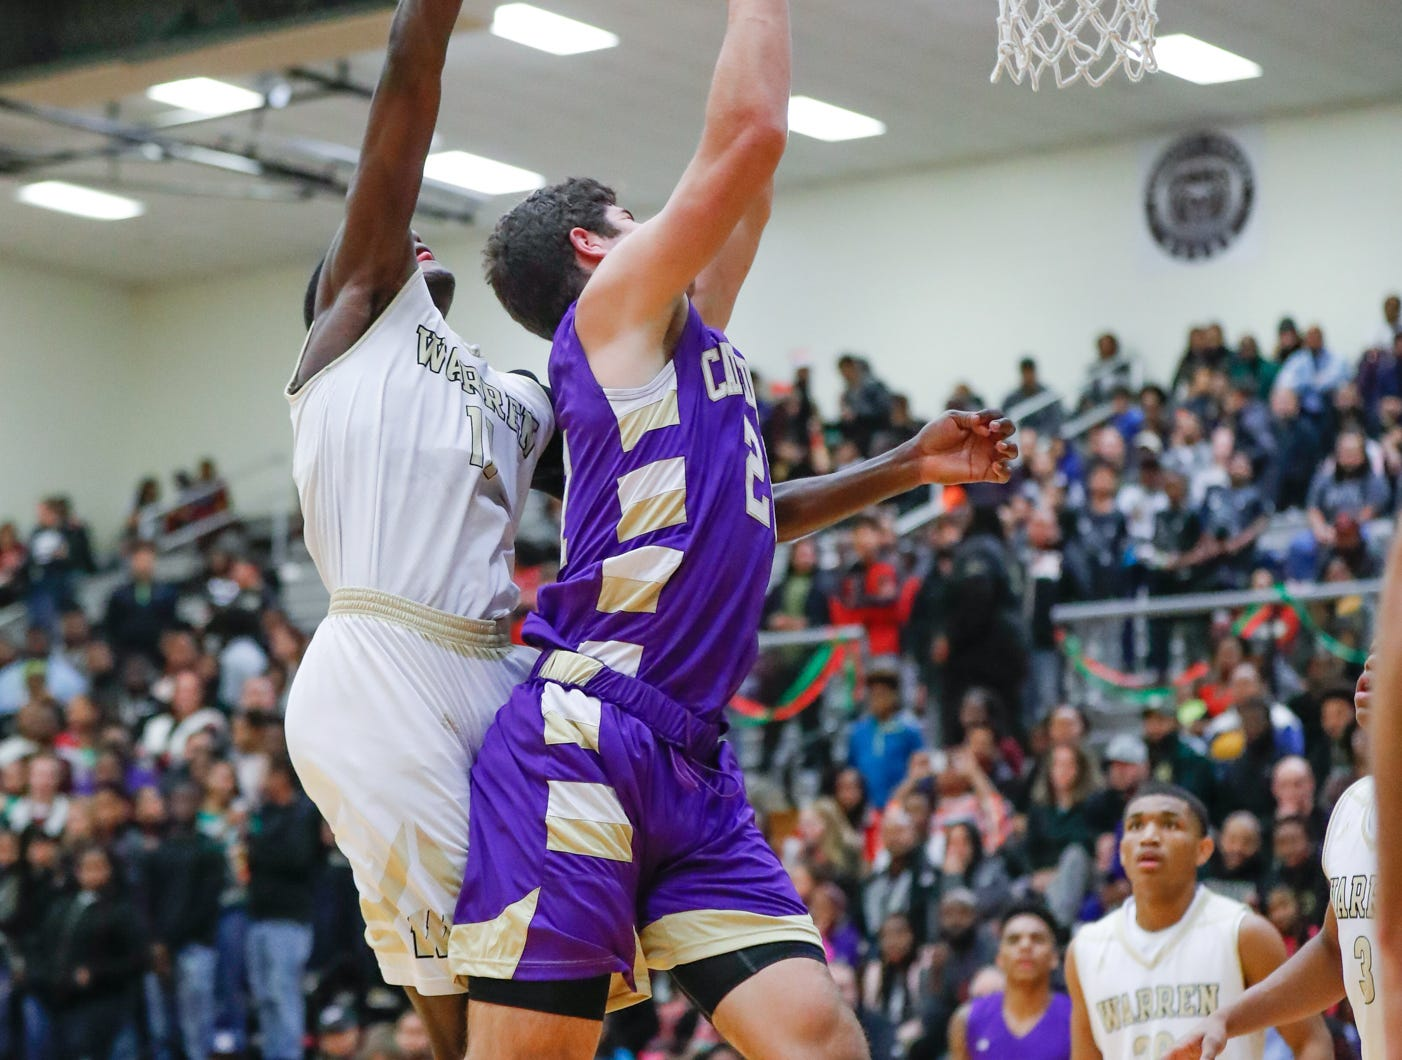 Cathedral High School's Isaac Farah (34) shoots past Warren Central High School's forward Jesse Bingham (11) to the hoop during a varsity boys basketball game between Cathedral High School and Warren Central High School at Warren Central on Friday, Dec. 7, 2018.